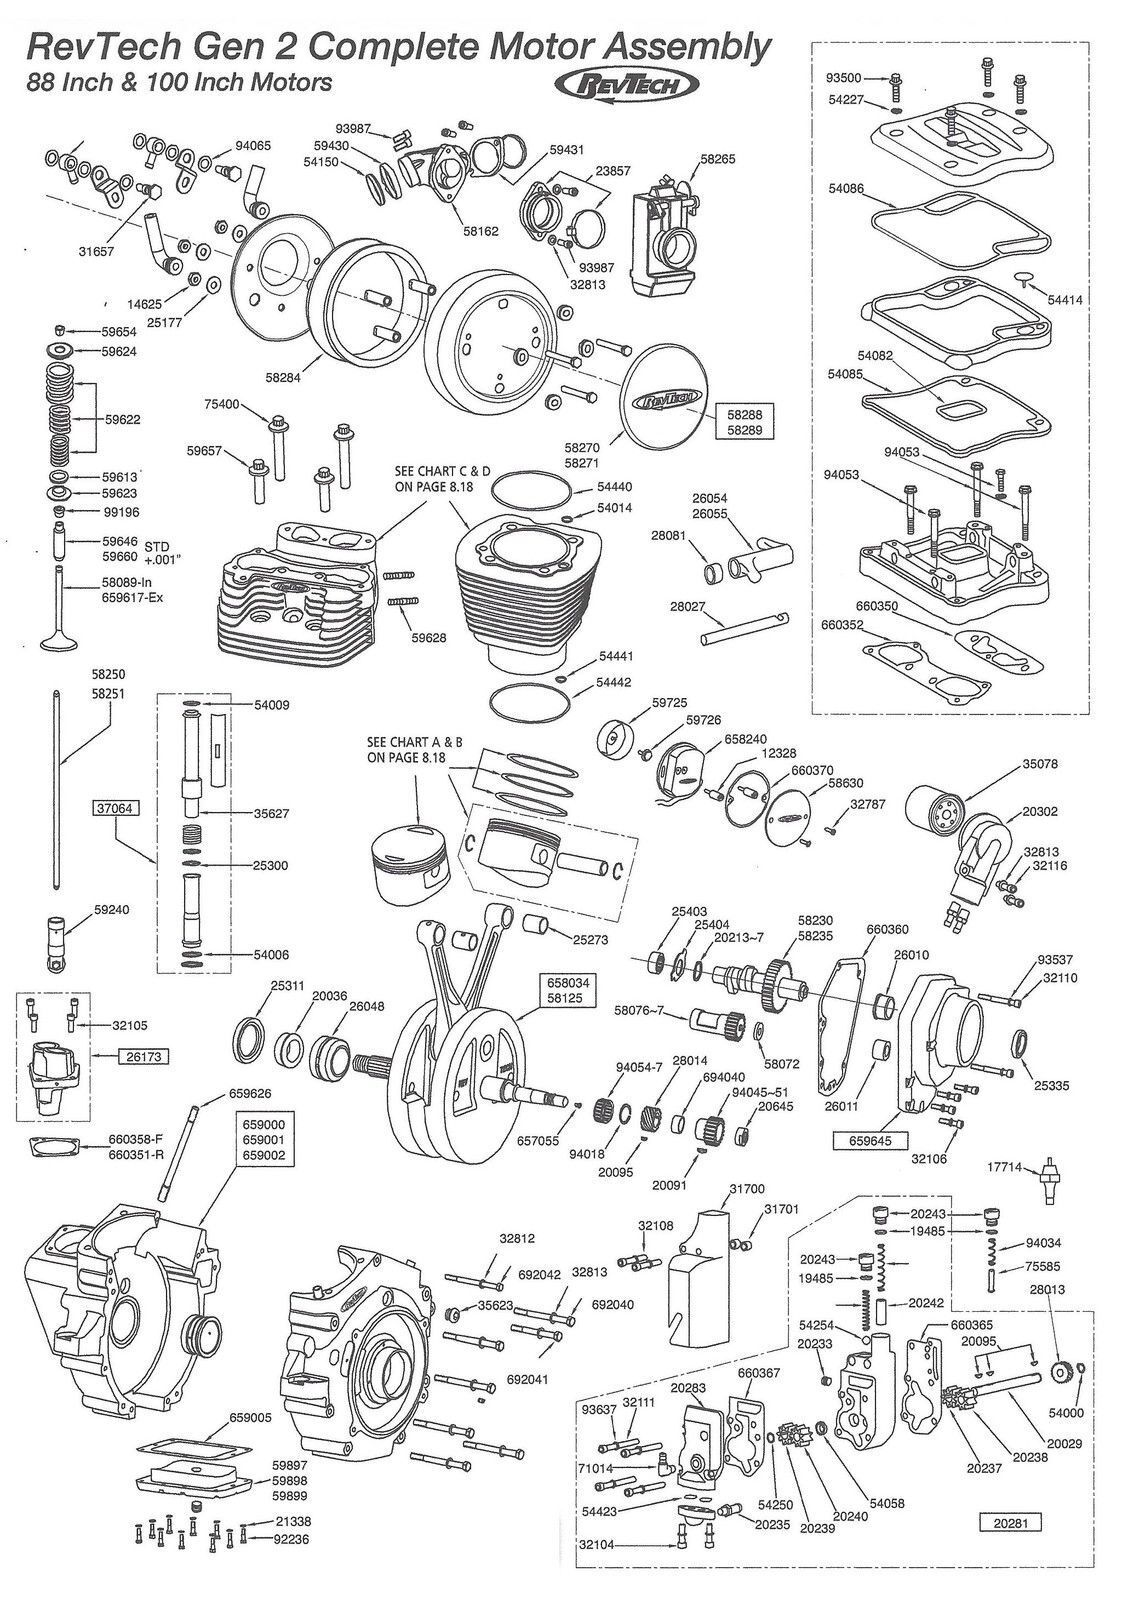 Revtech 100 Engine Wiring Diagram Schematic Diagrams Ignition Crankshaft Assembly House